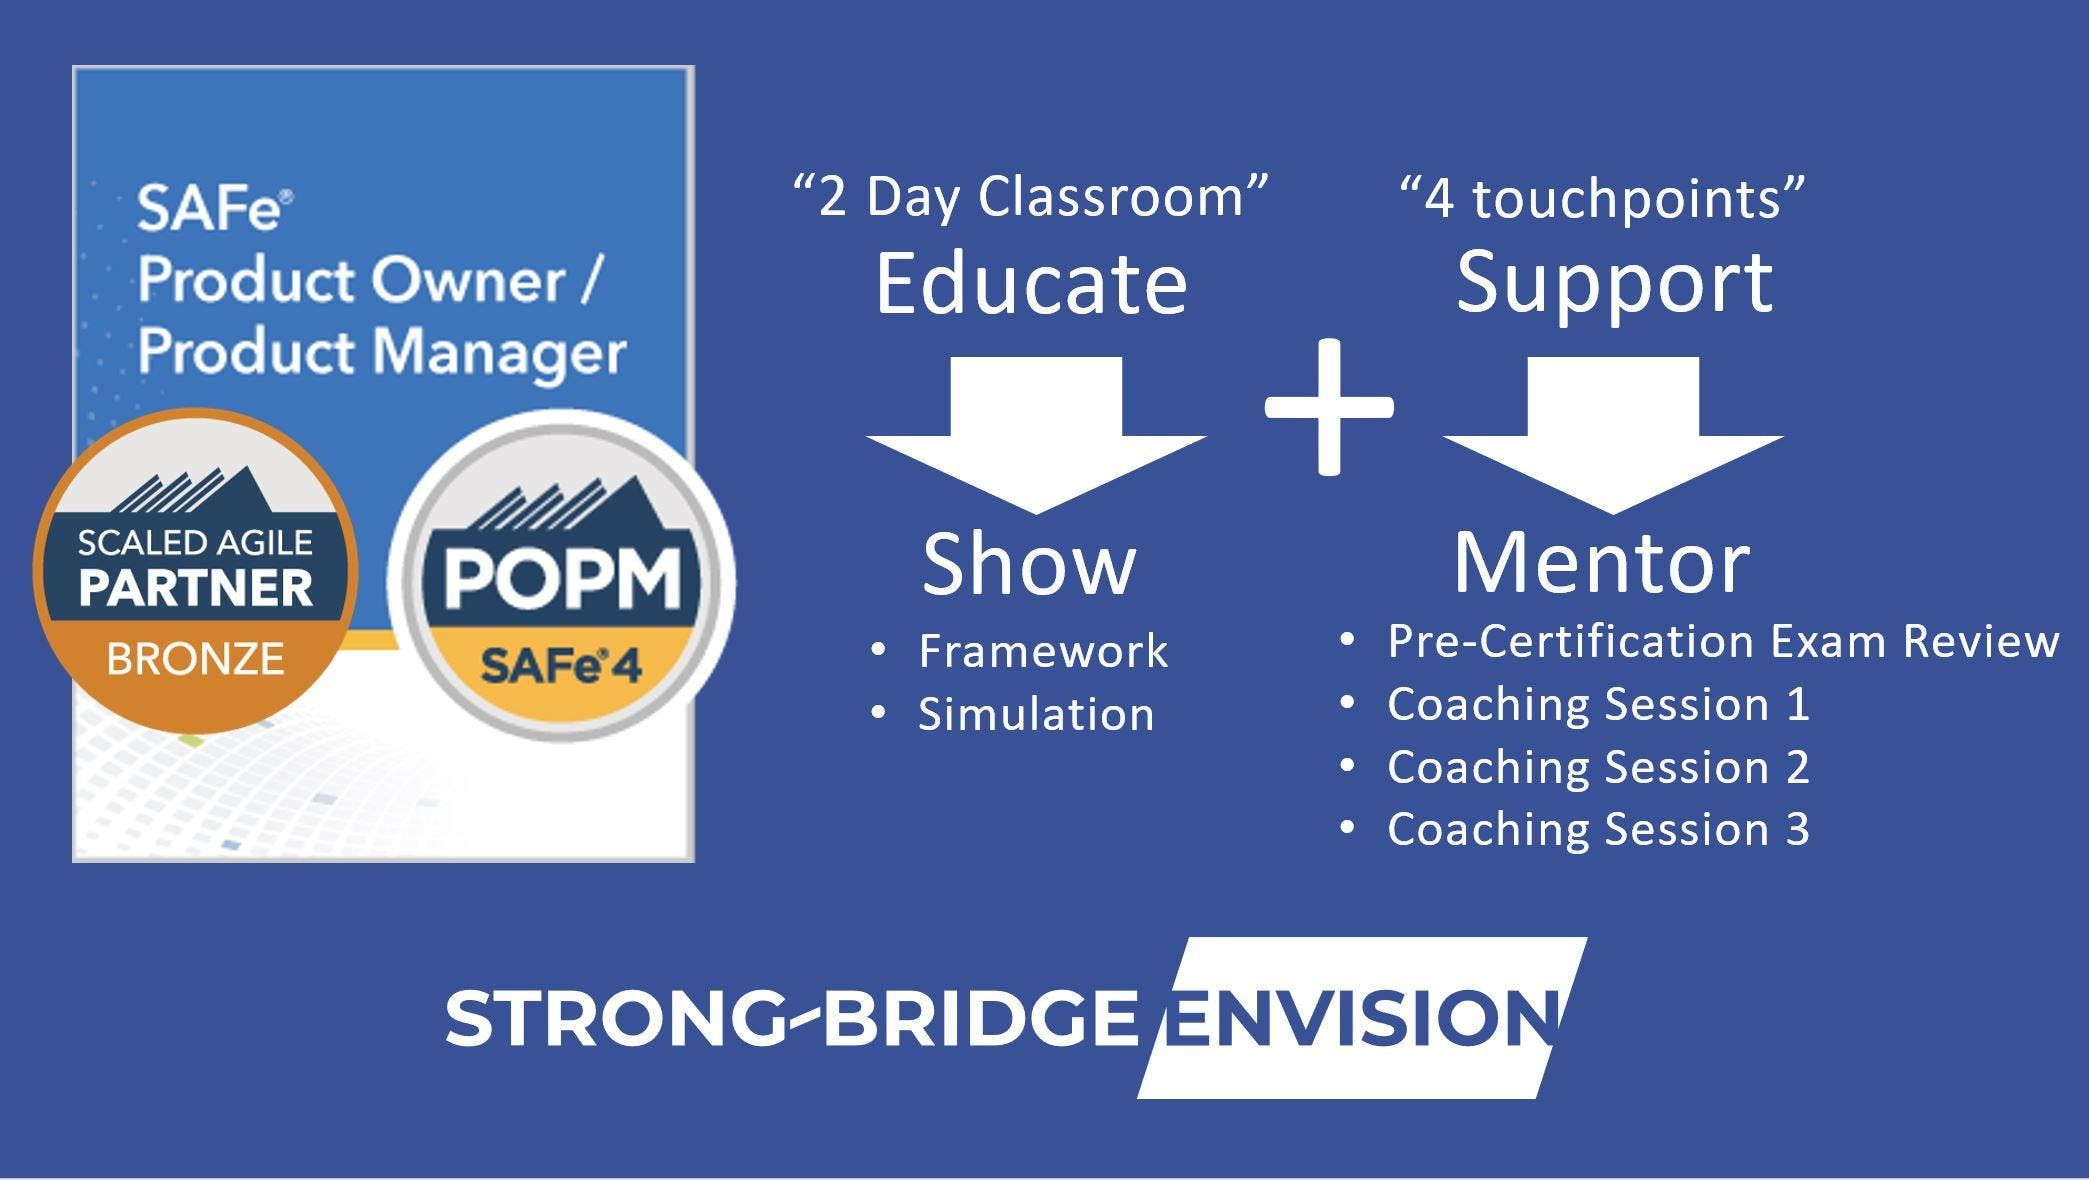 Safe 45 Product Ownerproduct Manager Popm Training With